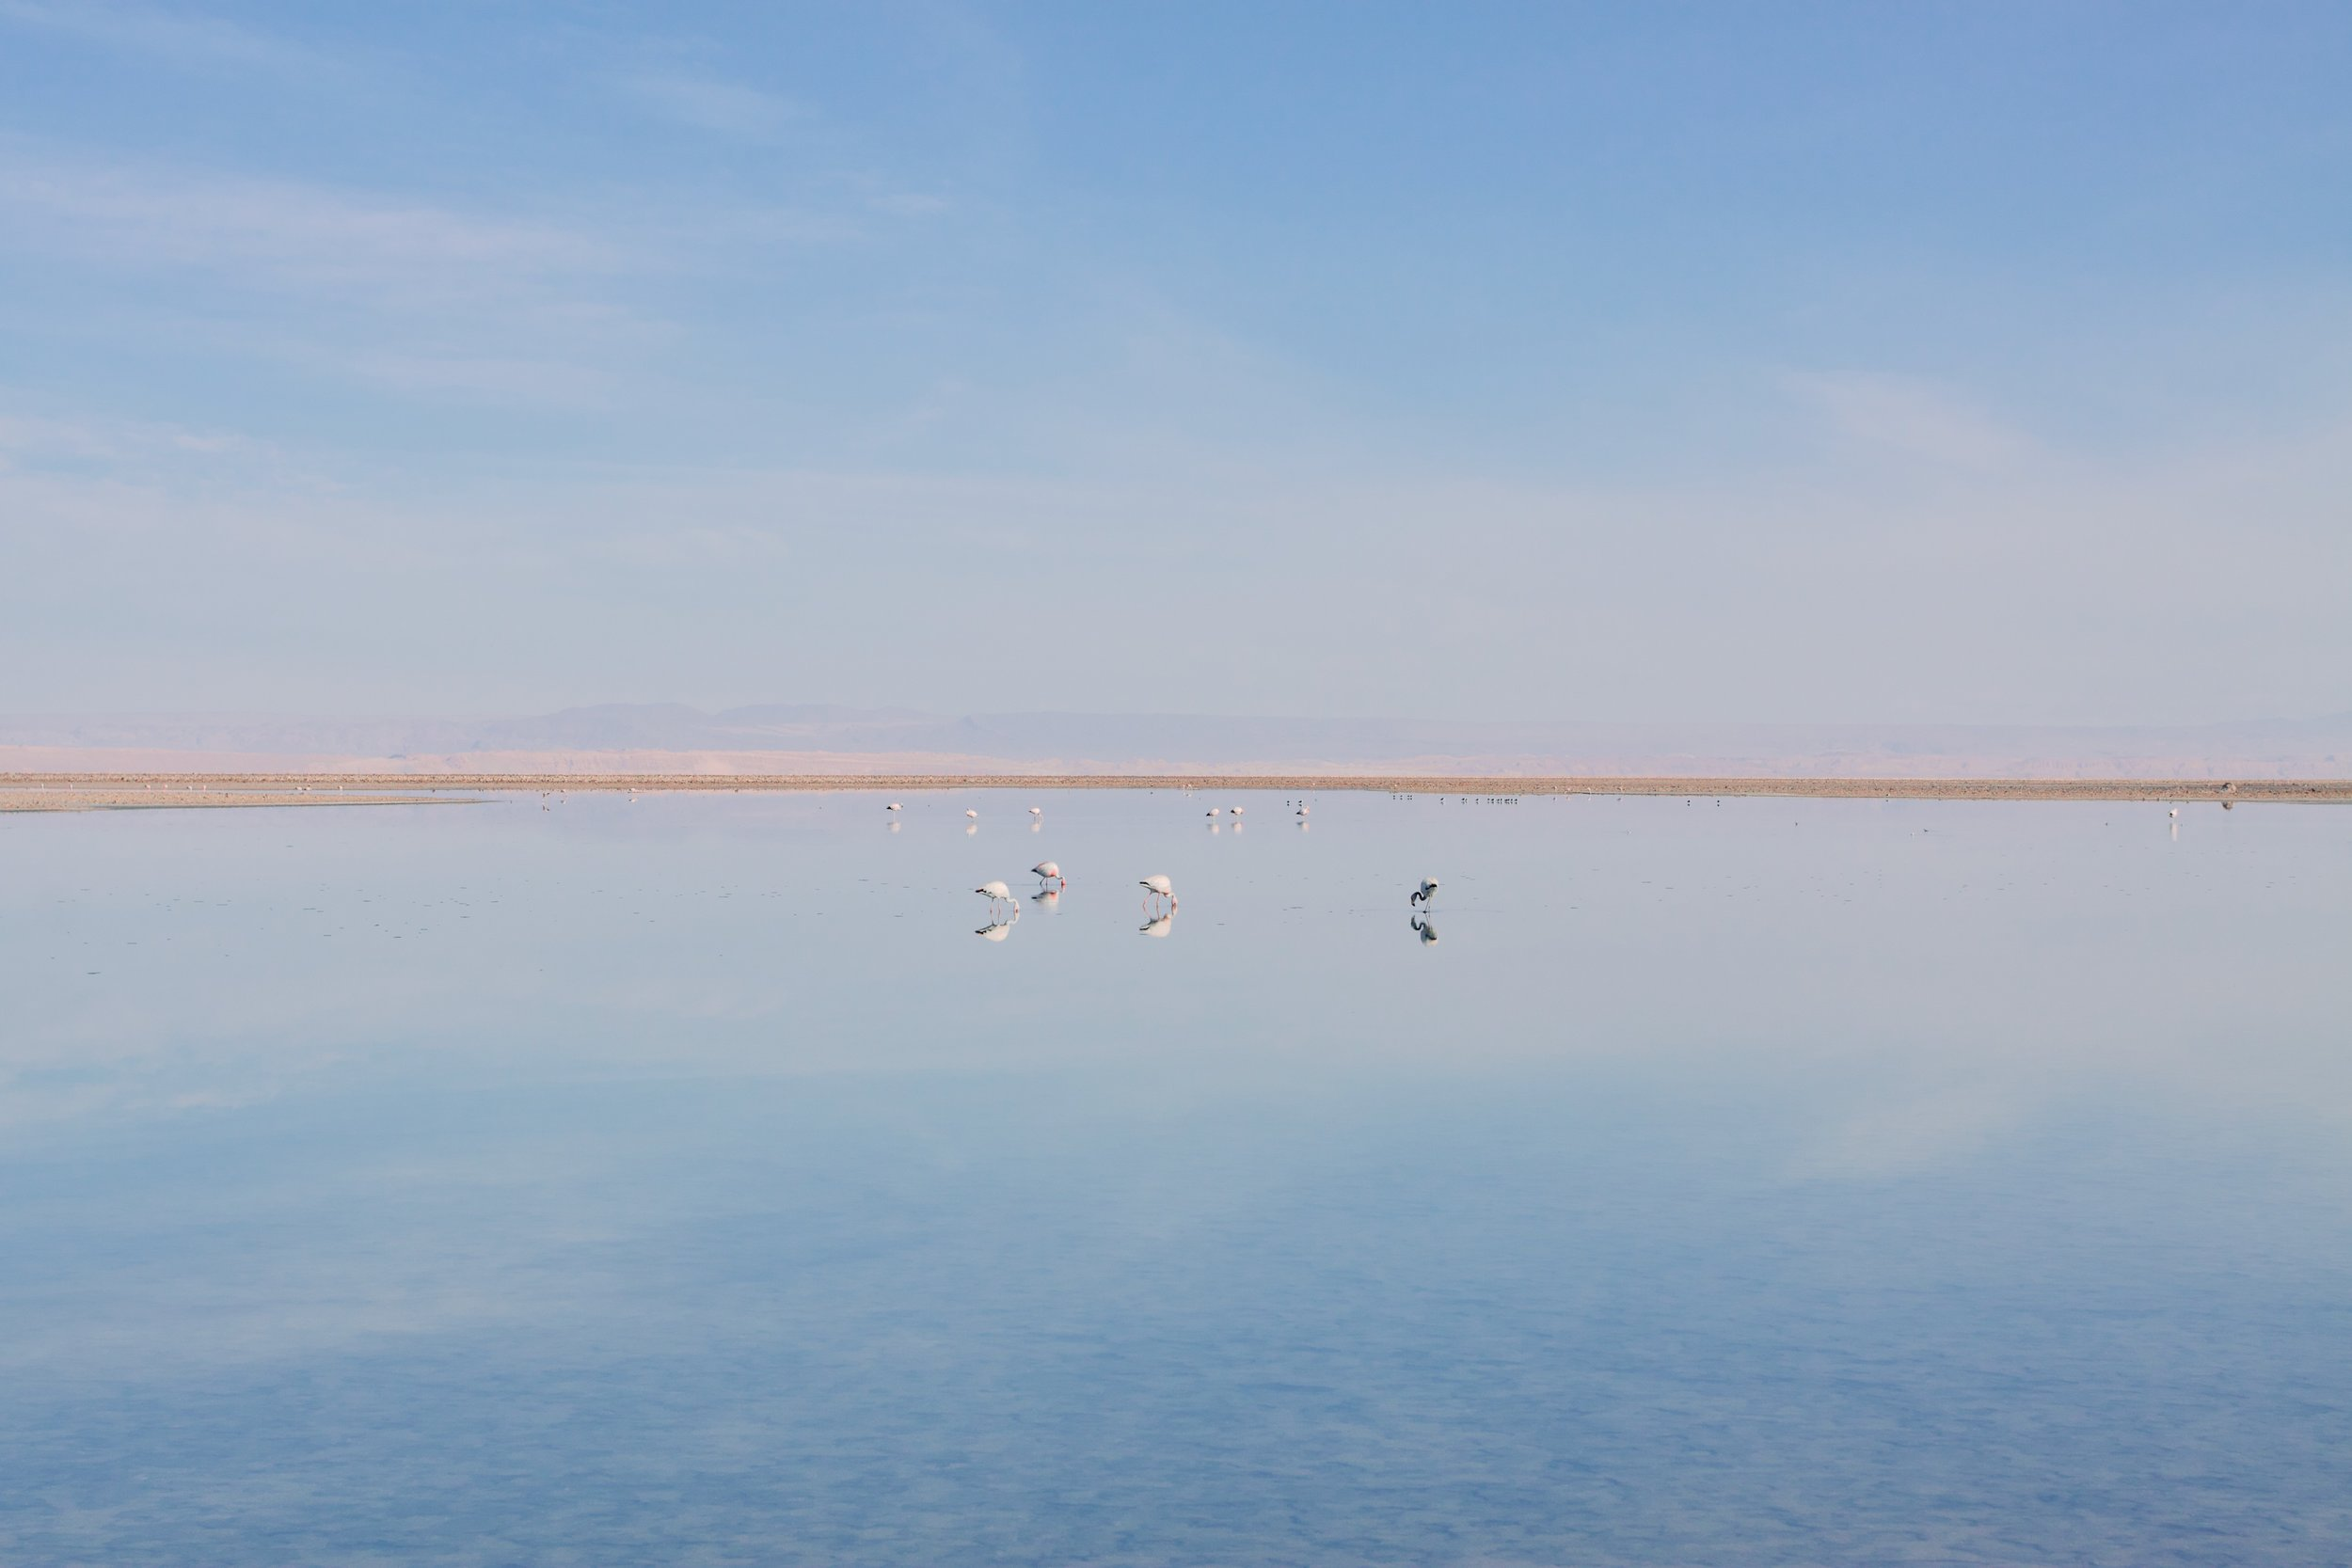 Flamingos on Laguna Chaxa, Atacama Desert Chile